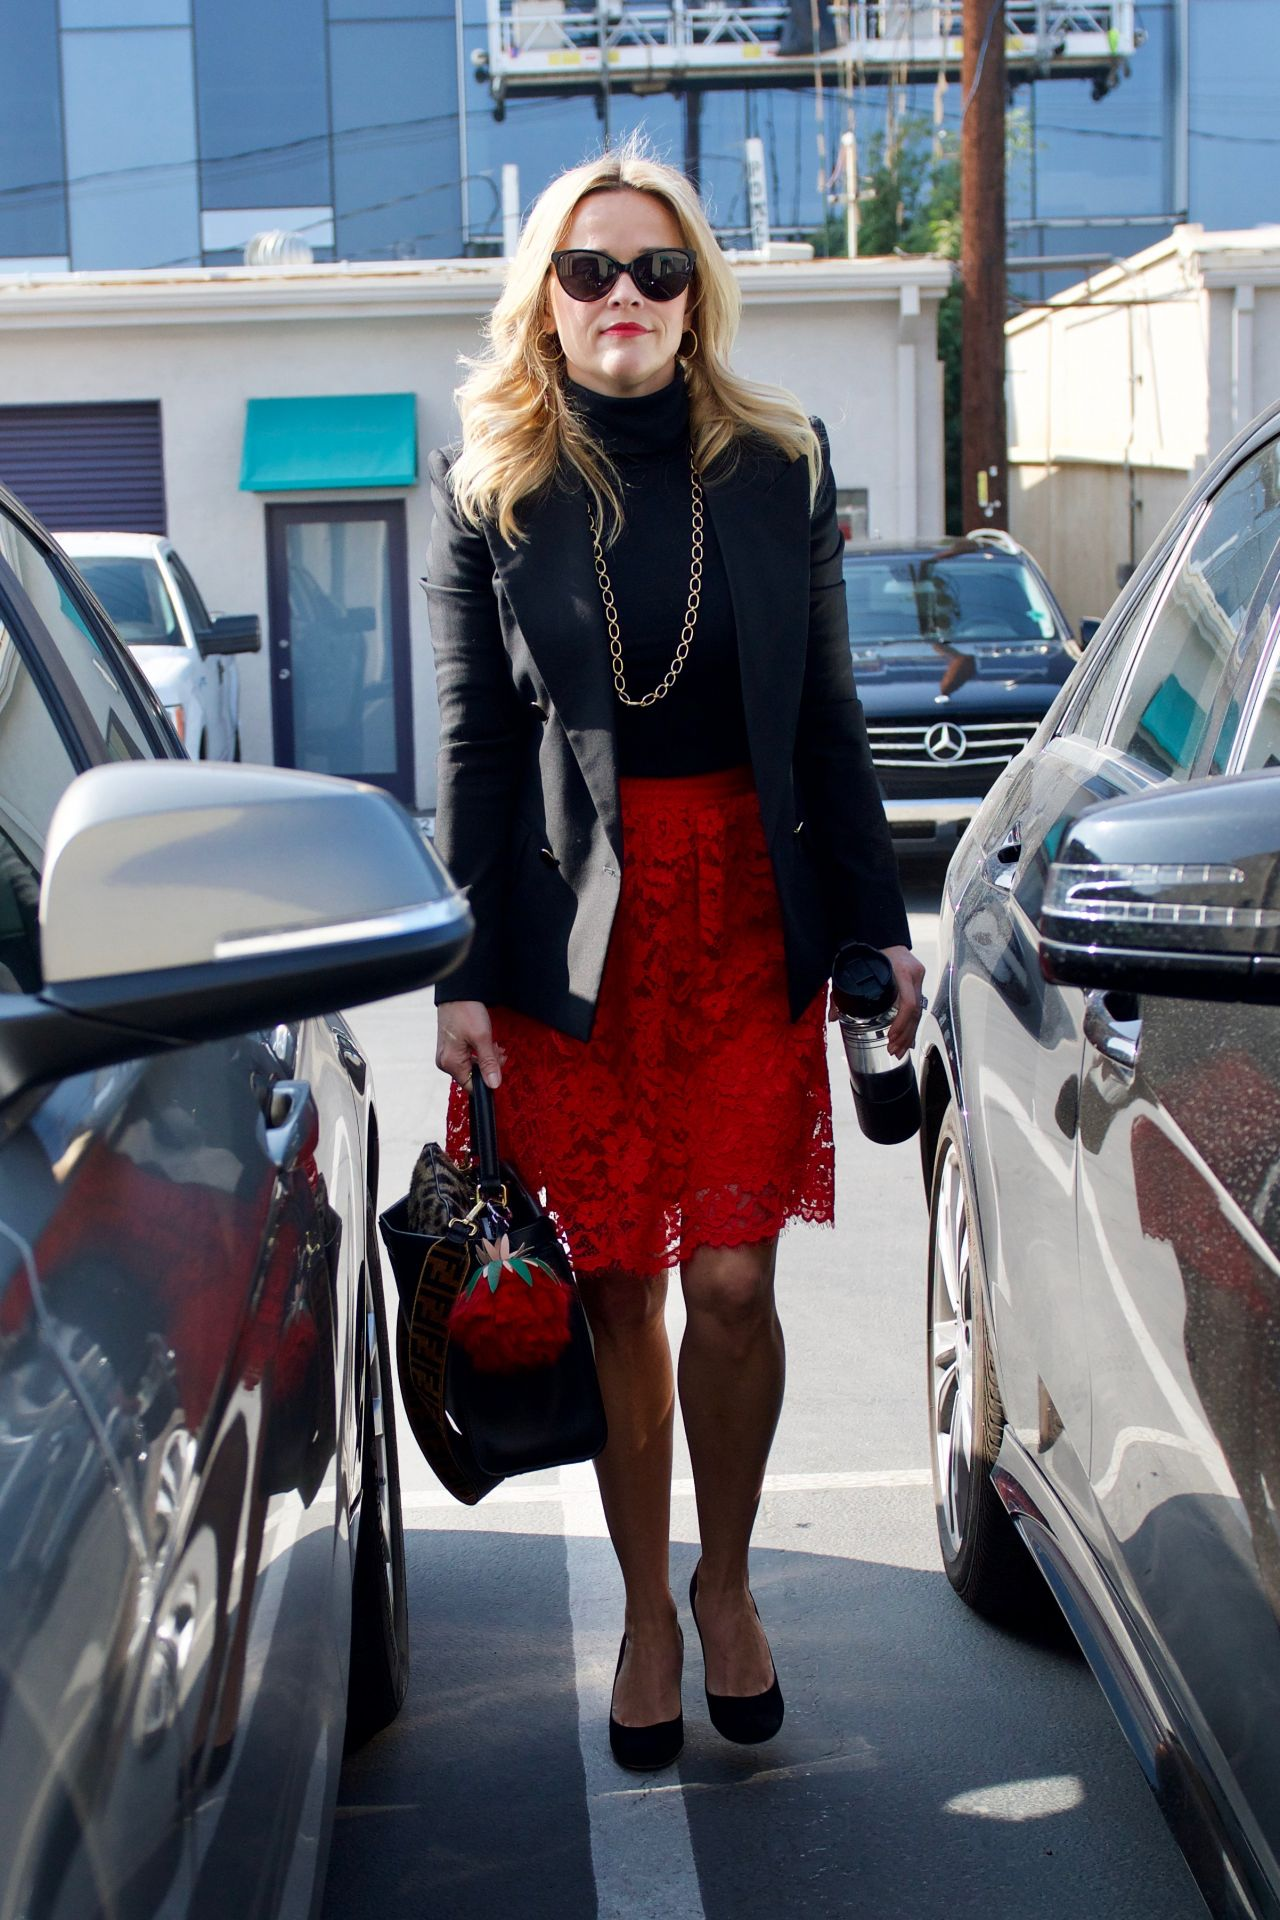 http://celebmafia.com/wp-content/uploads/2018/02/reese-witherspoon-out-in-los-angeles-02-05-2018-0.jpg